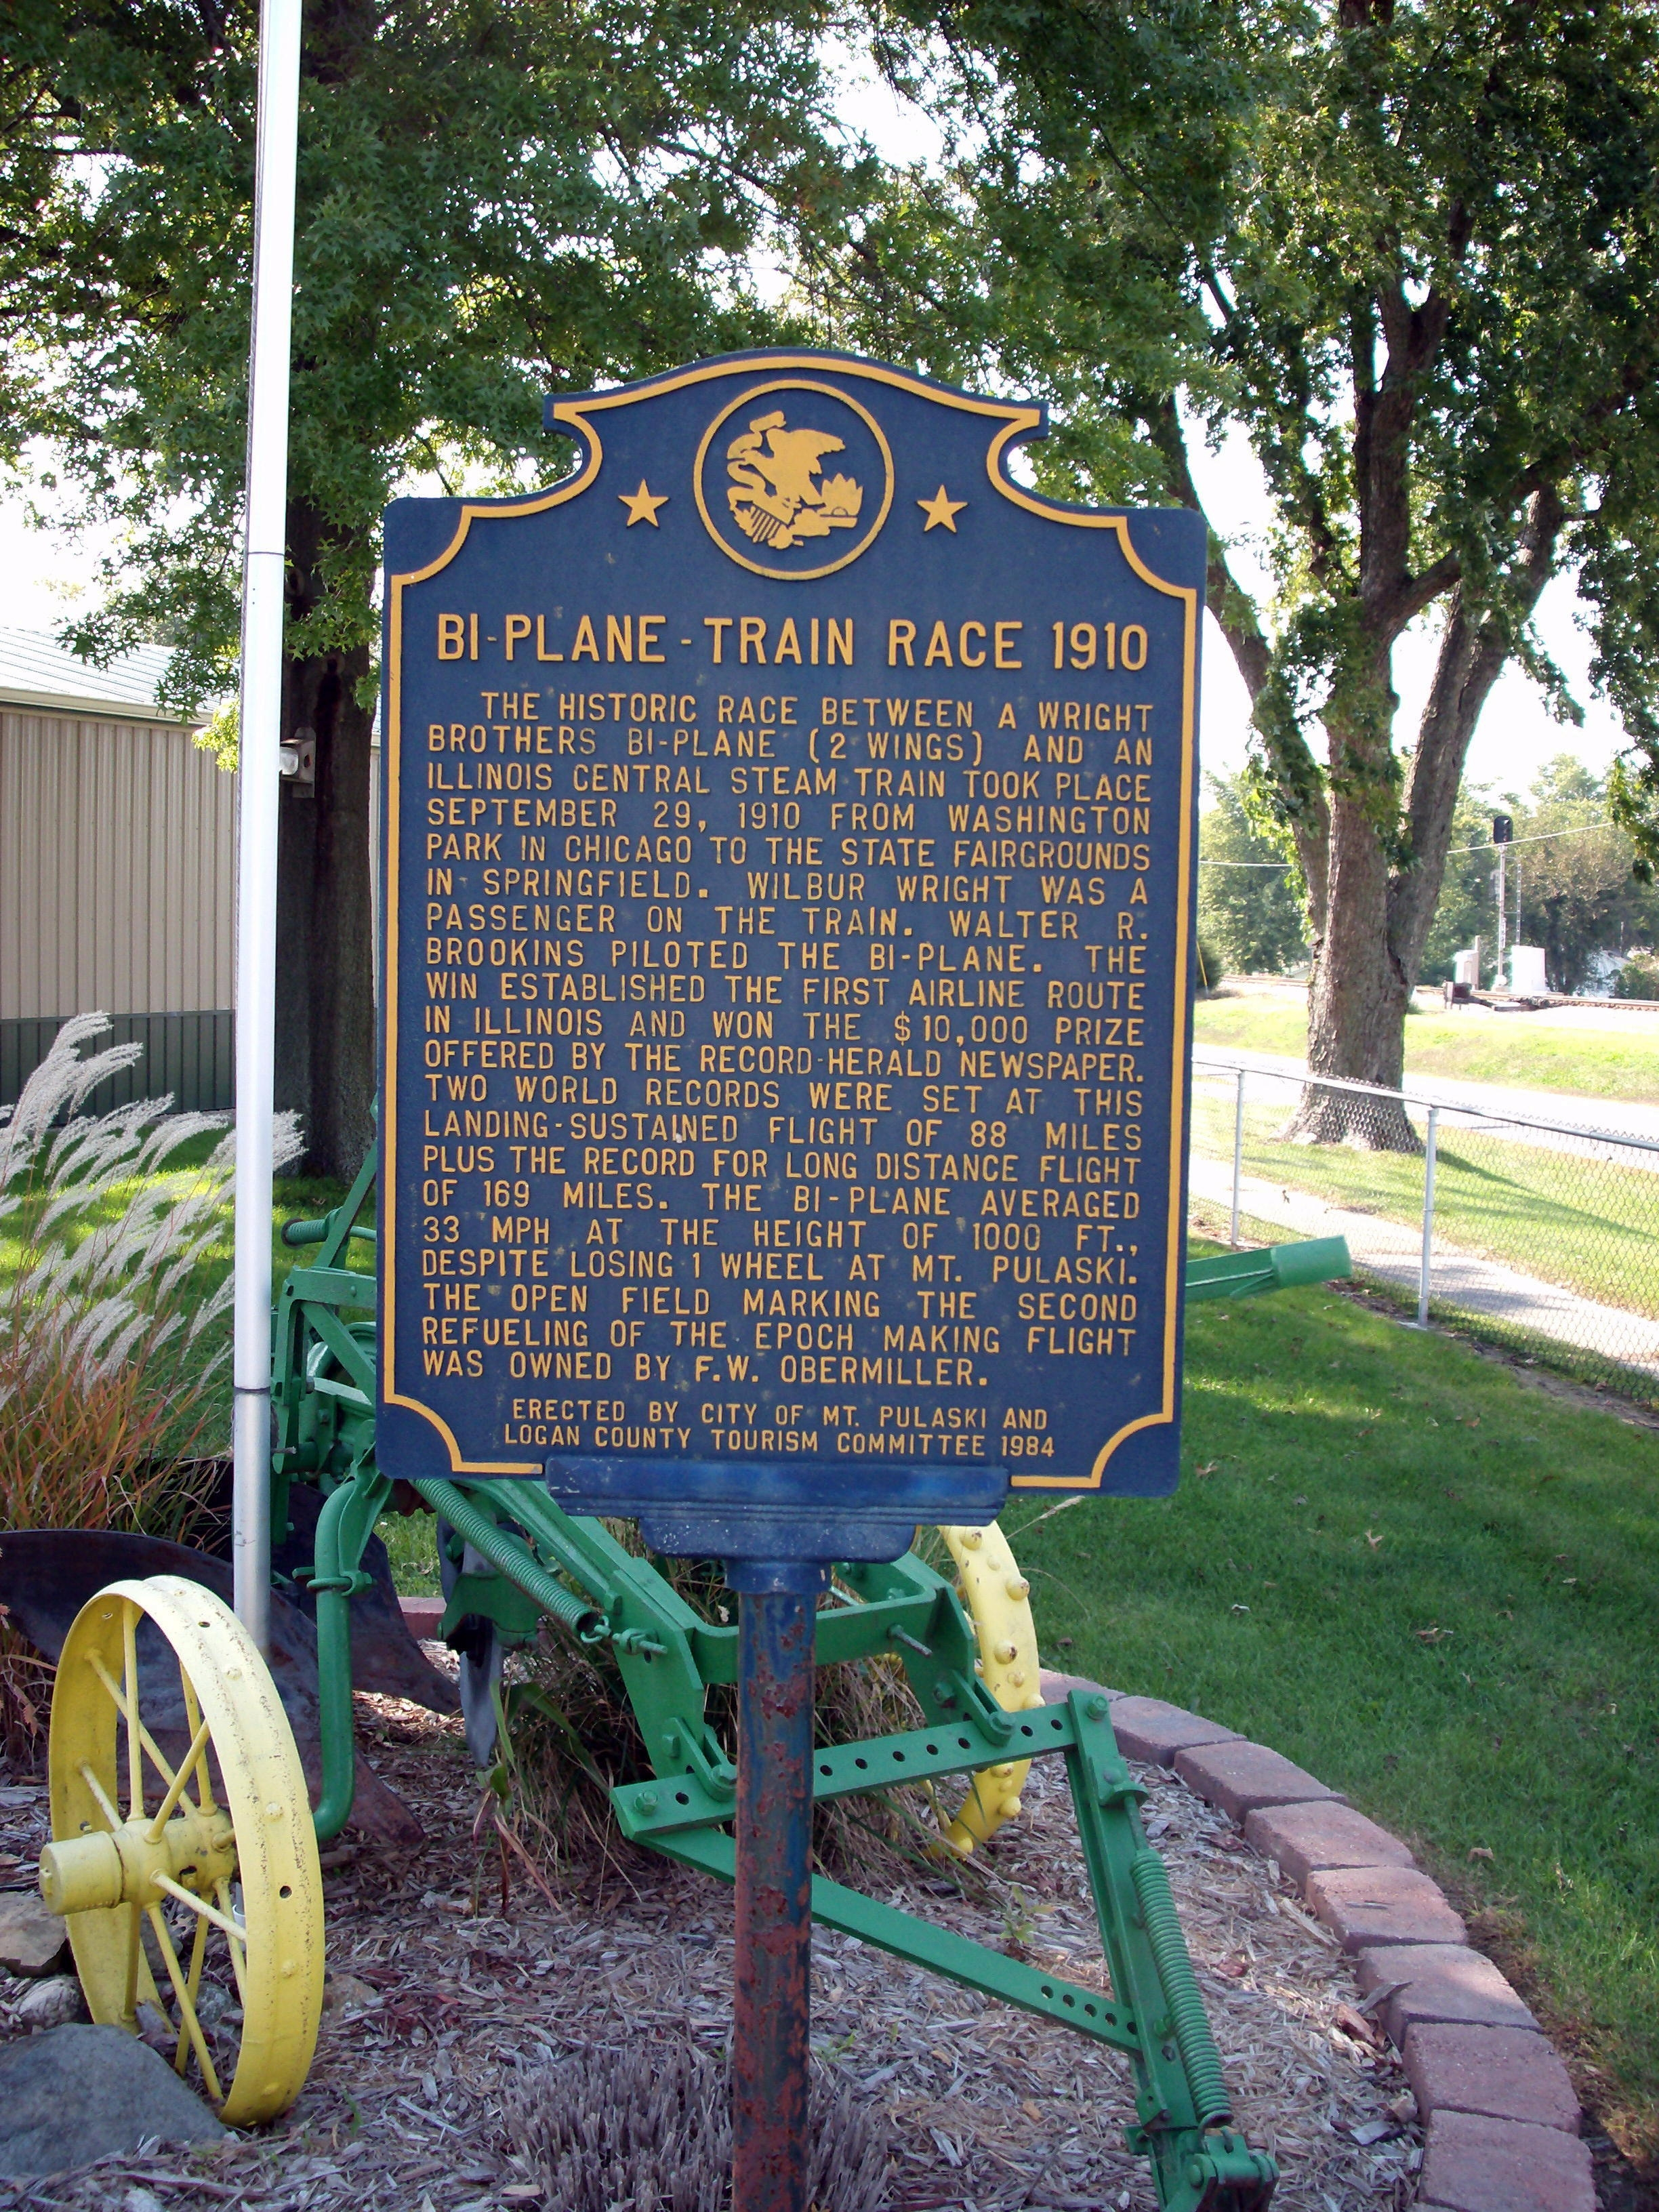 Bi-Plane - - Train Race 1910 Marker